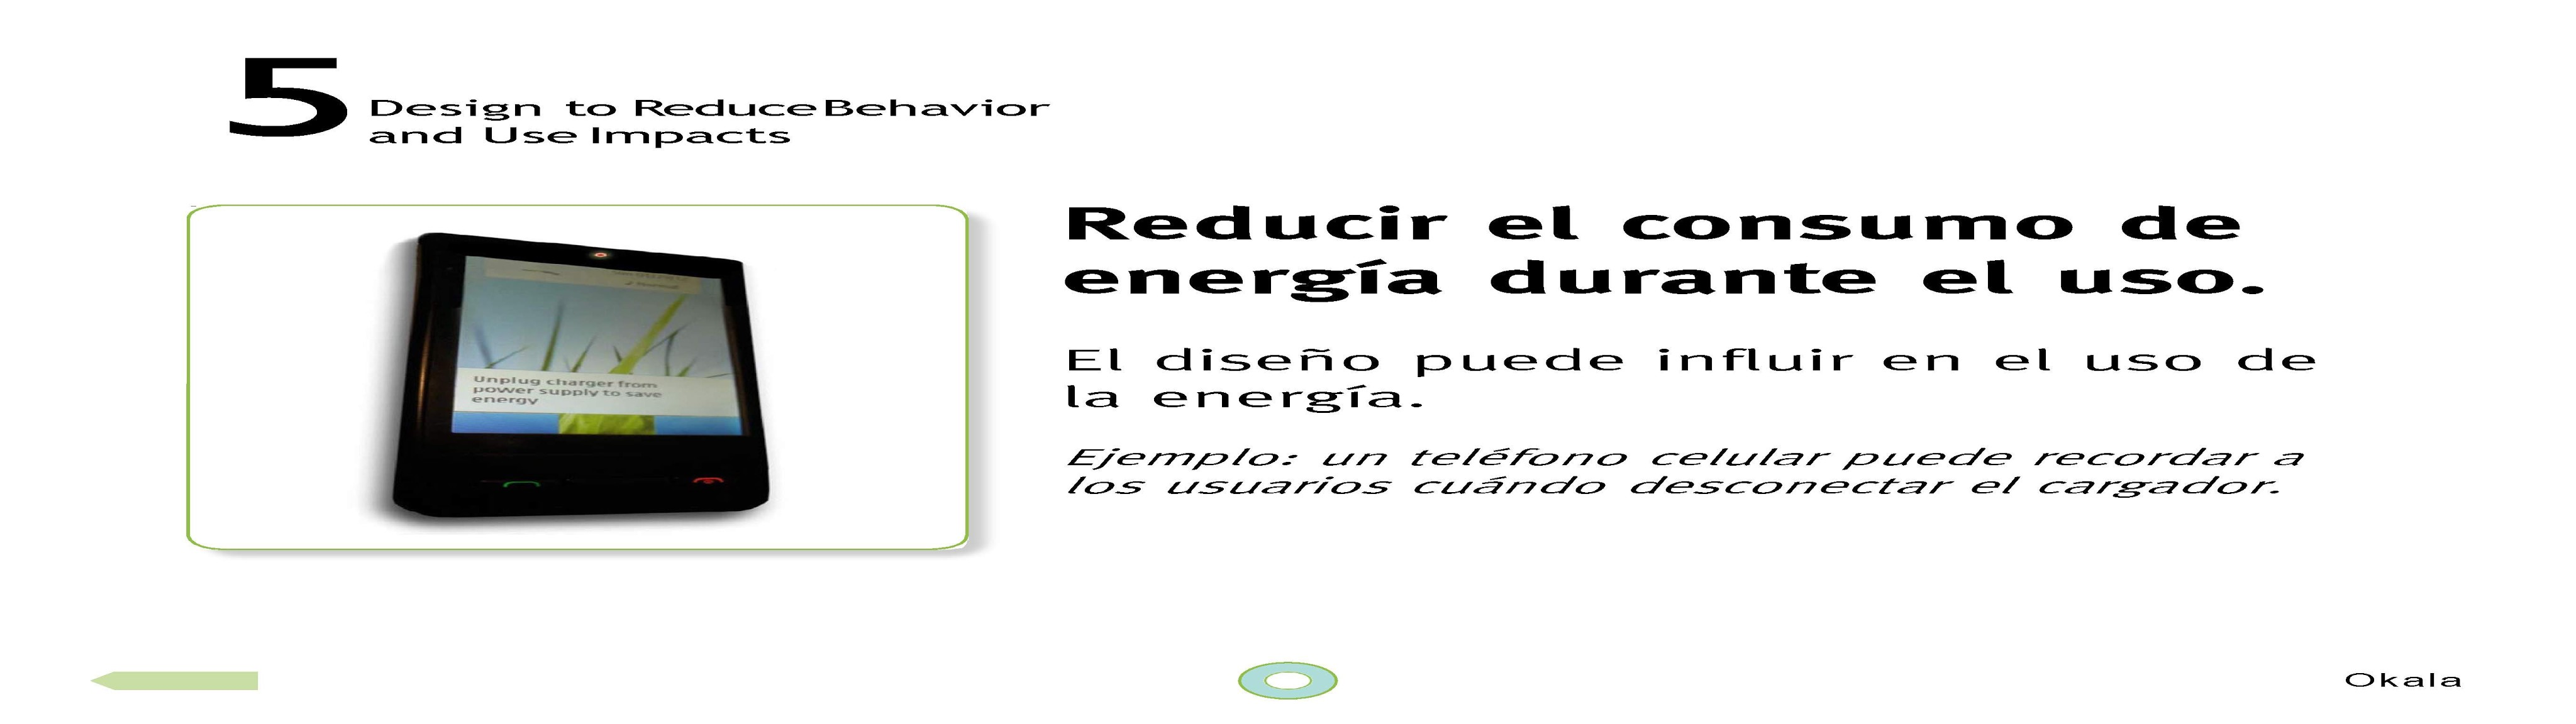 okala-ecodesign-strategy-guide-2012-spanish.new_page_28-1